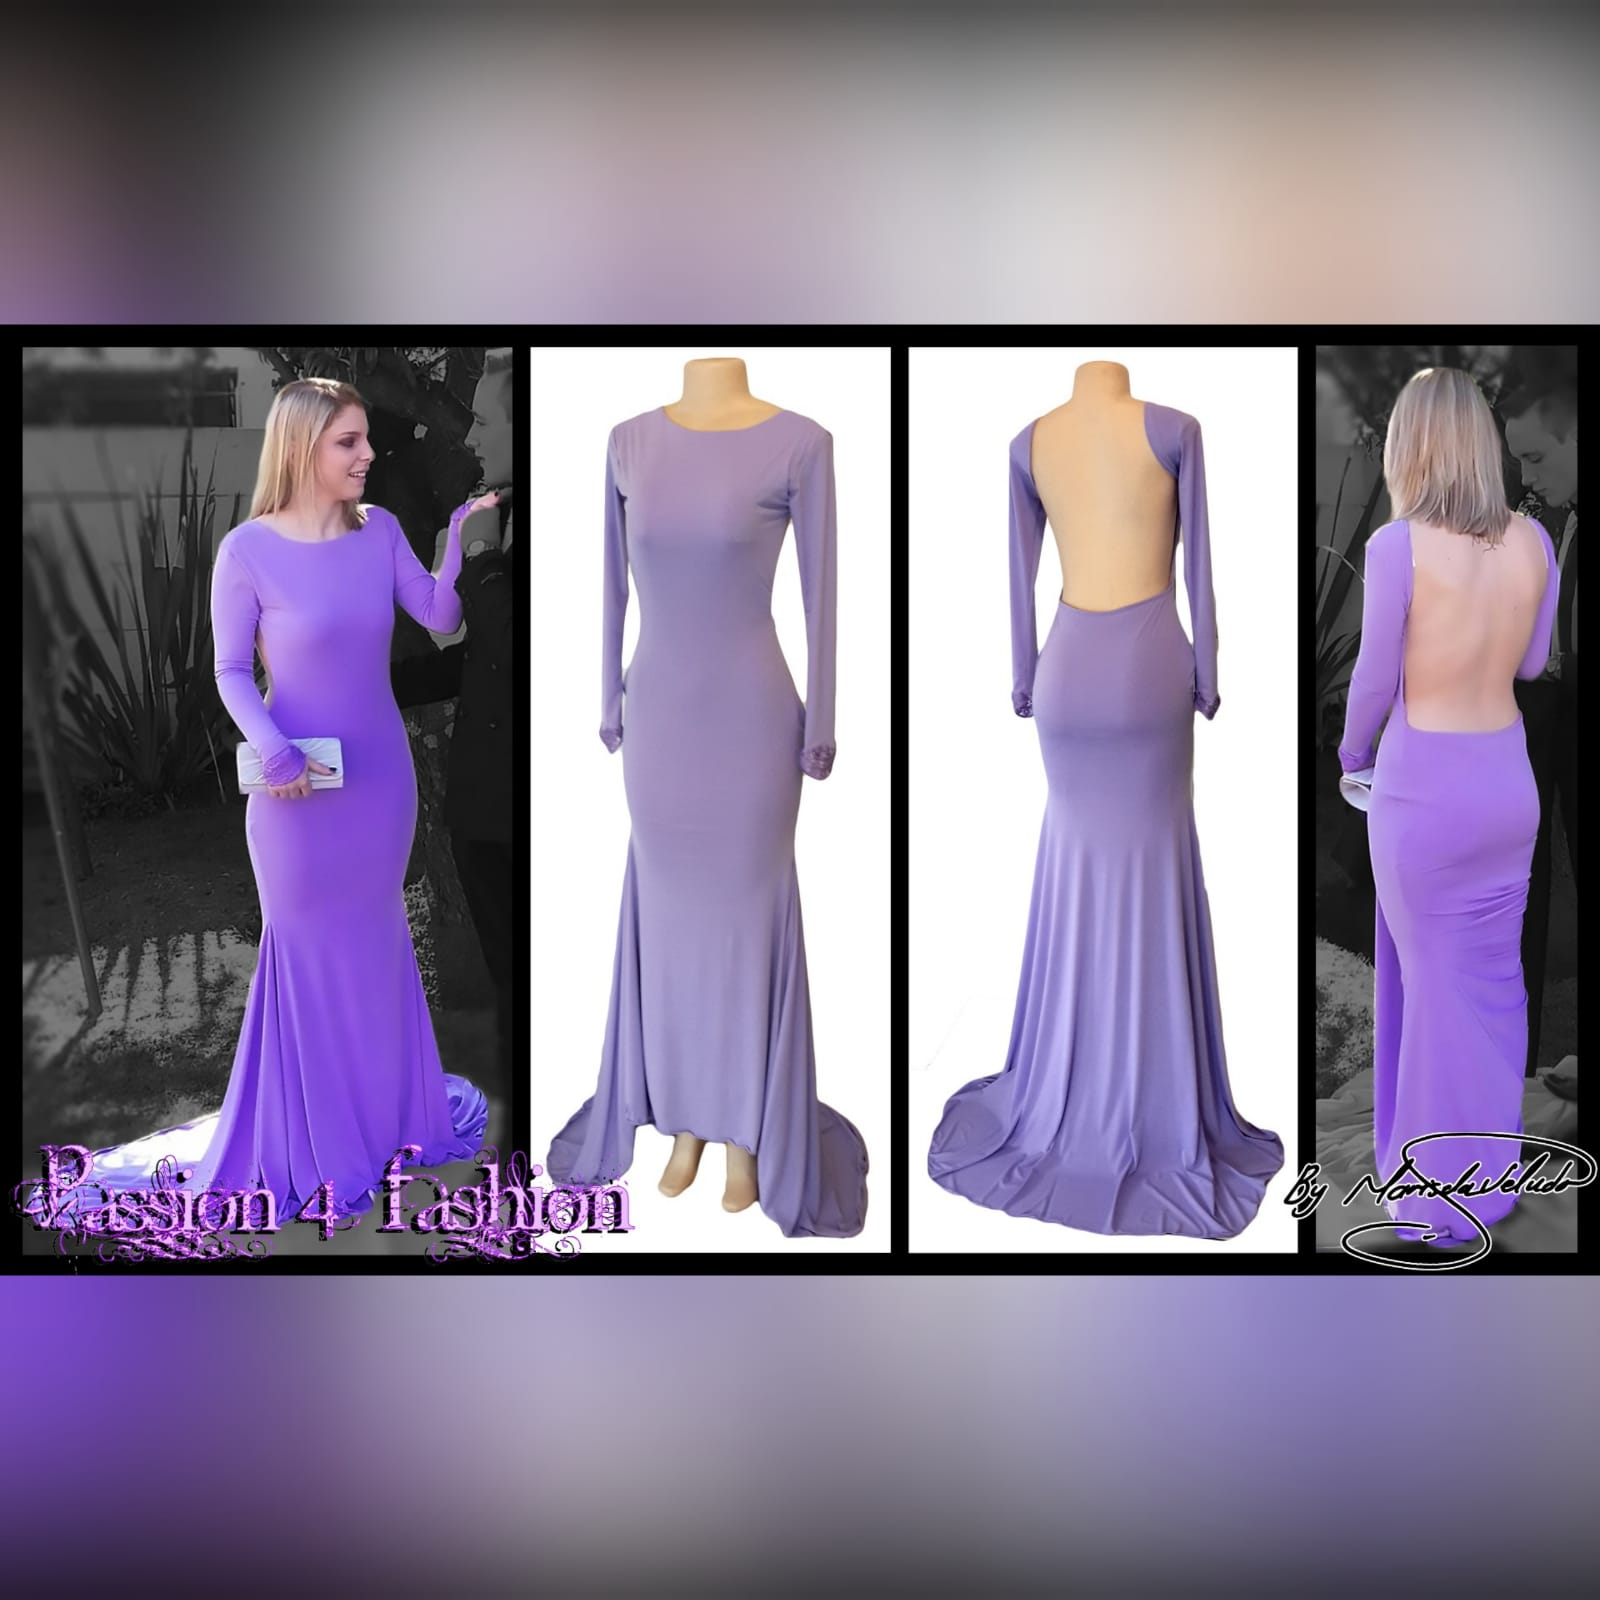 Body fitting lilac soft mermaid prom dress and a jewel neckline 5 body fitting lilac soft memaid prom dress and a jewel neckline. Low open square back. With a train and long sleeves. Sleeves finished with lace.